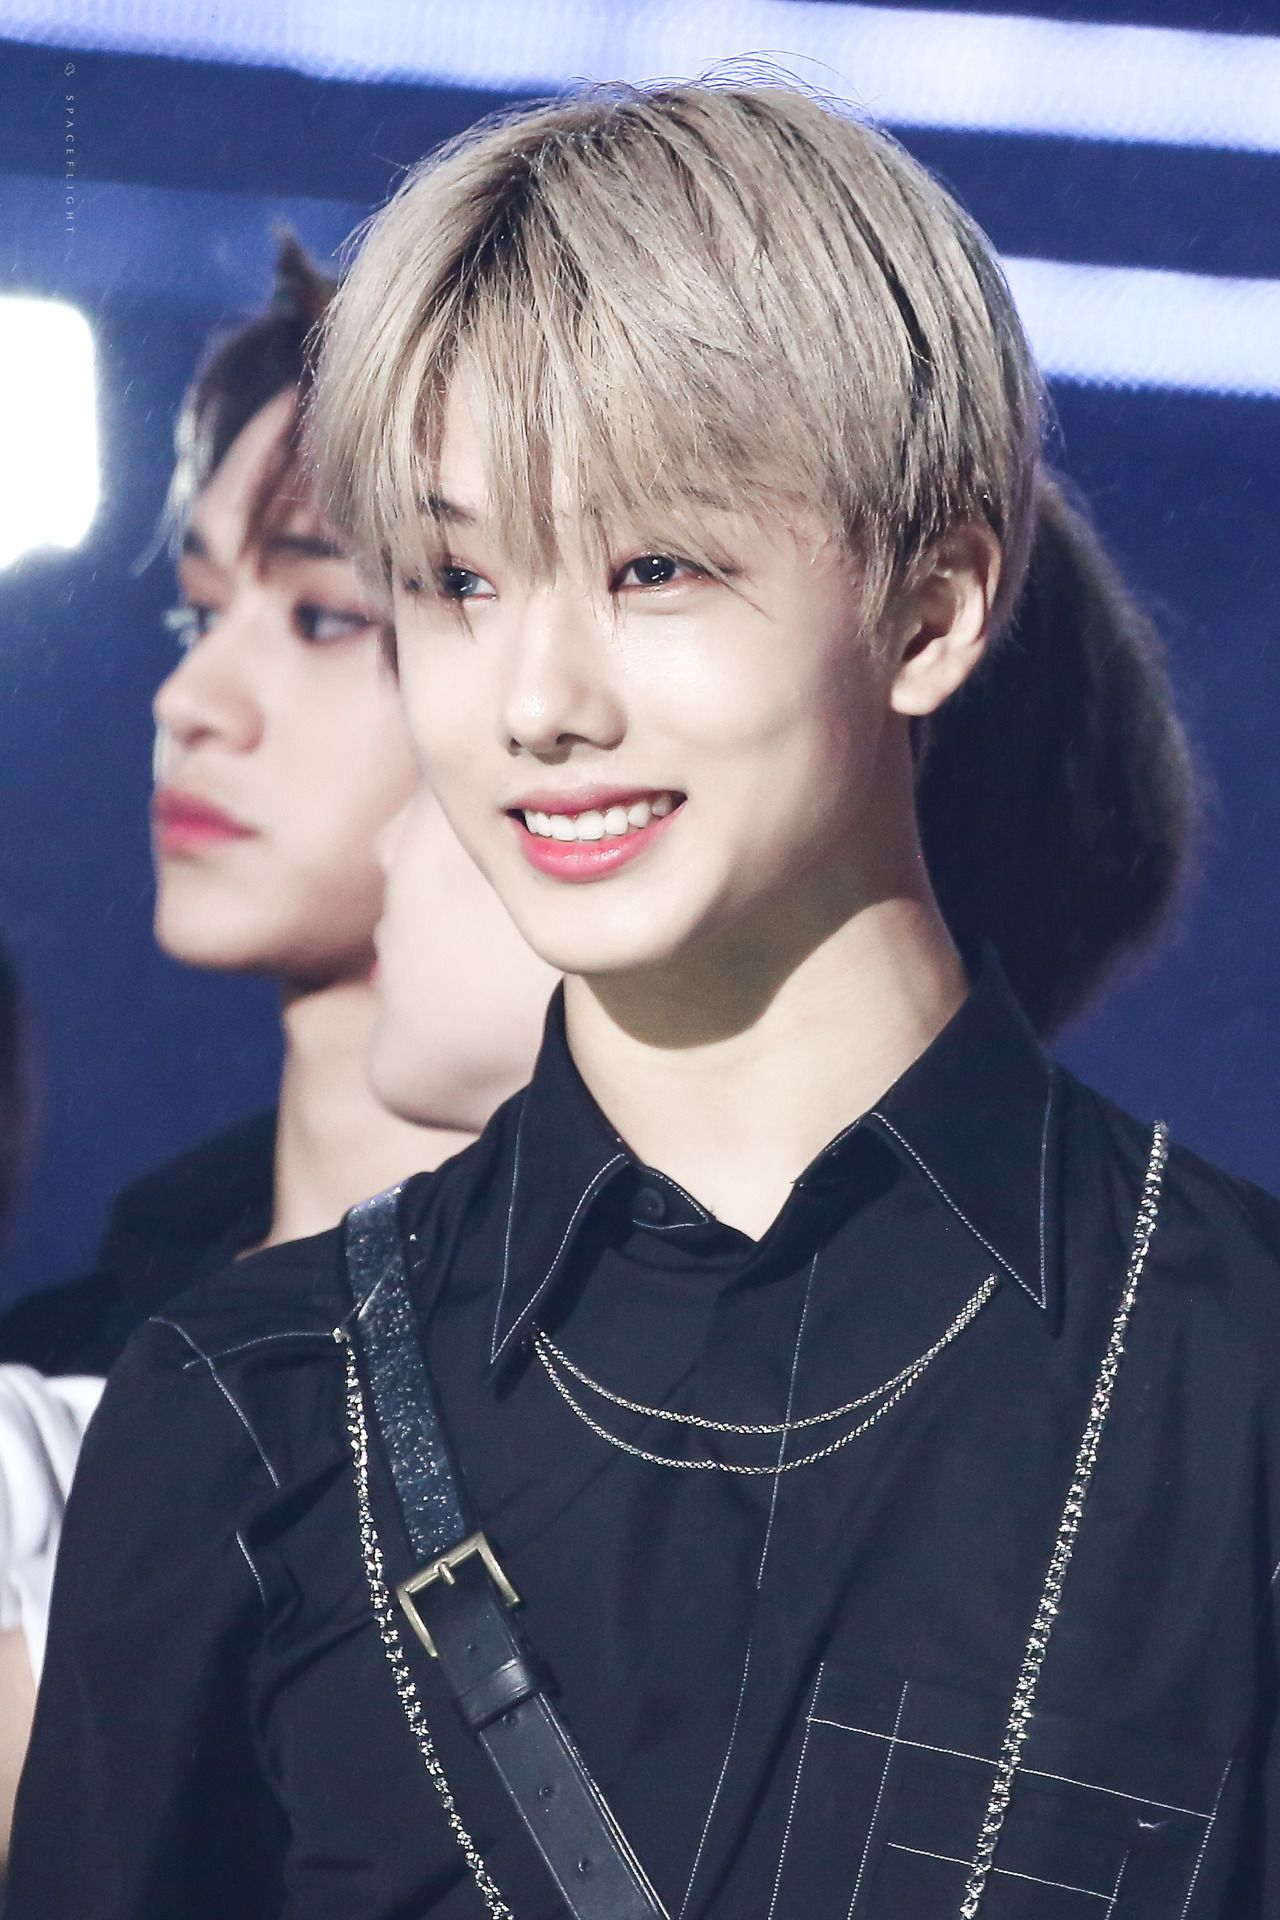 FY! NCT #dreampop